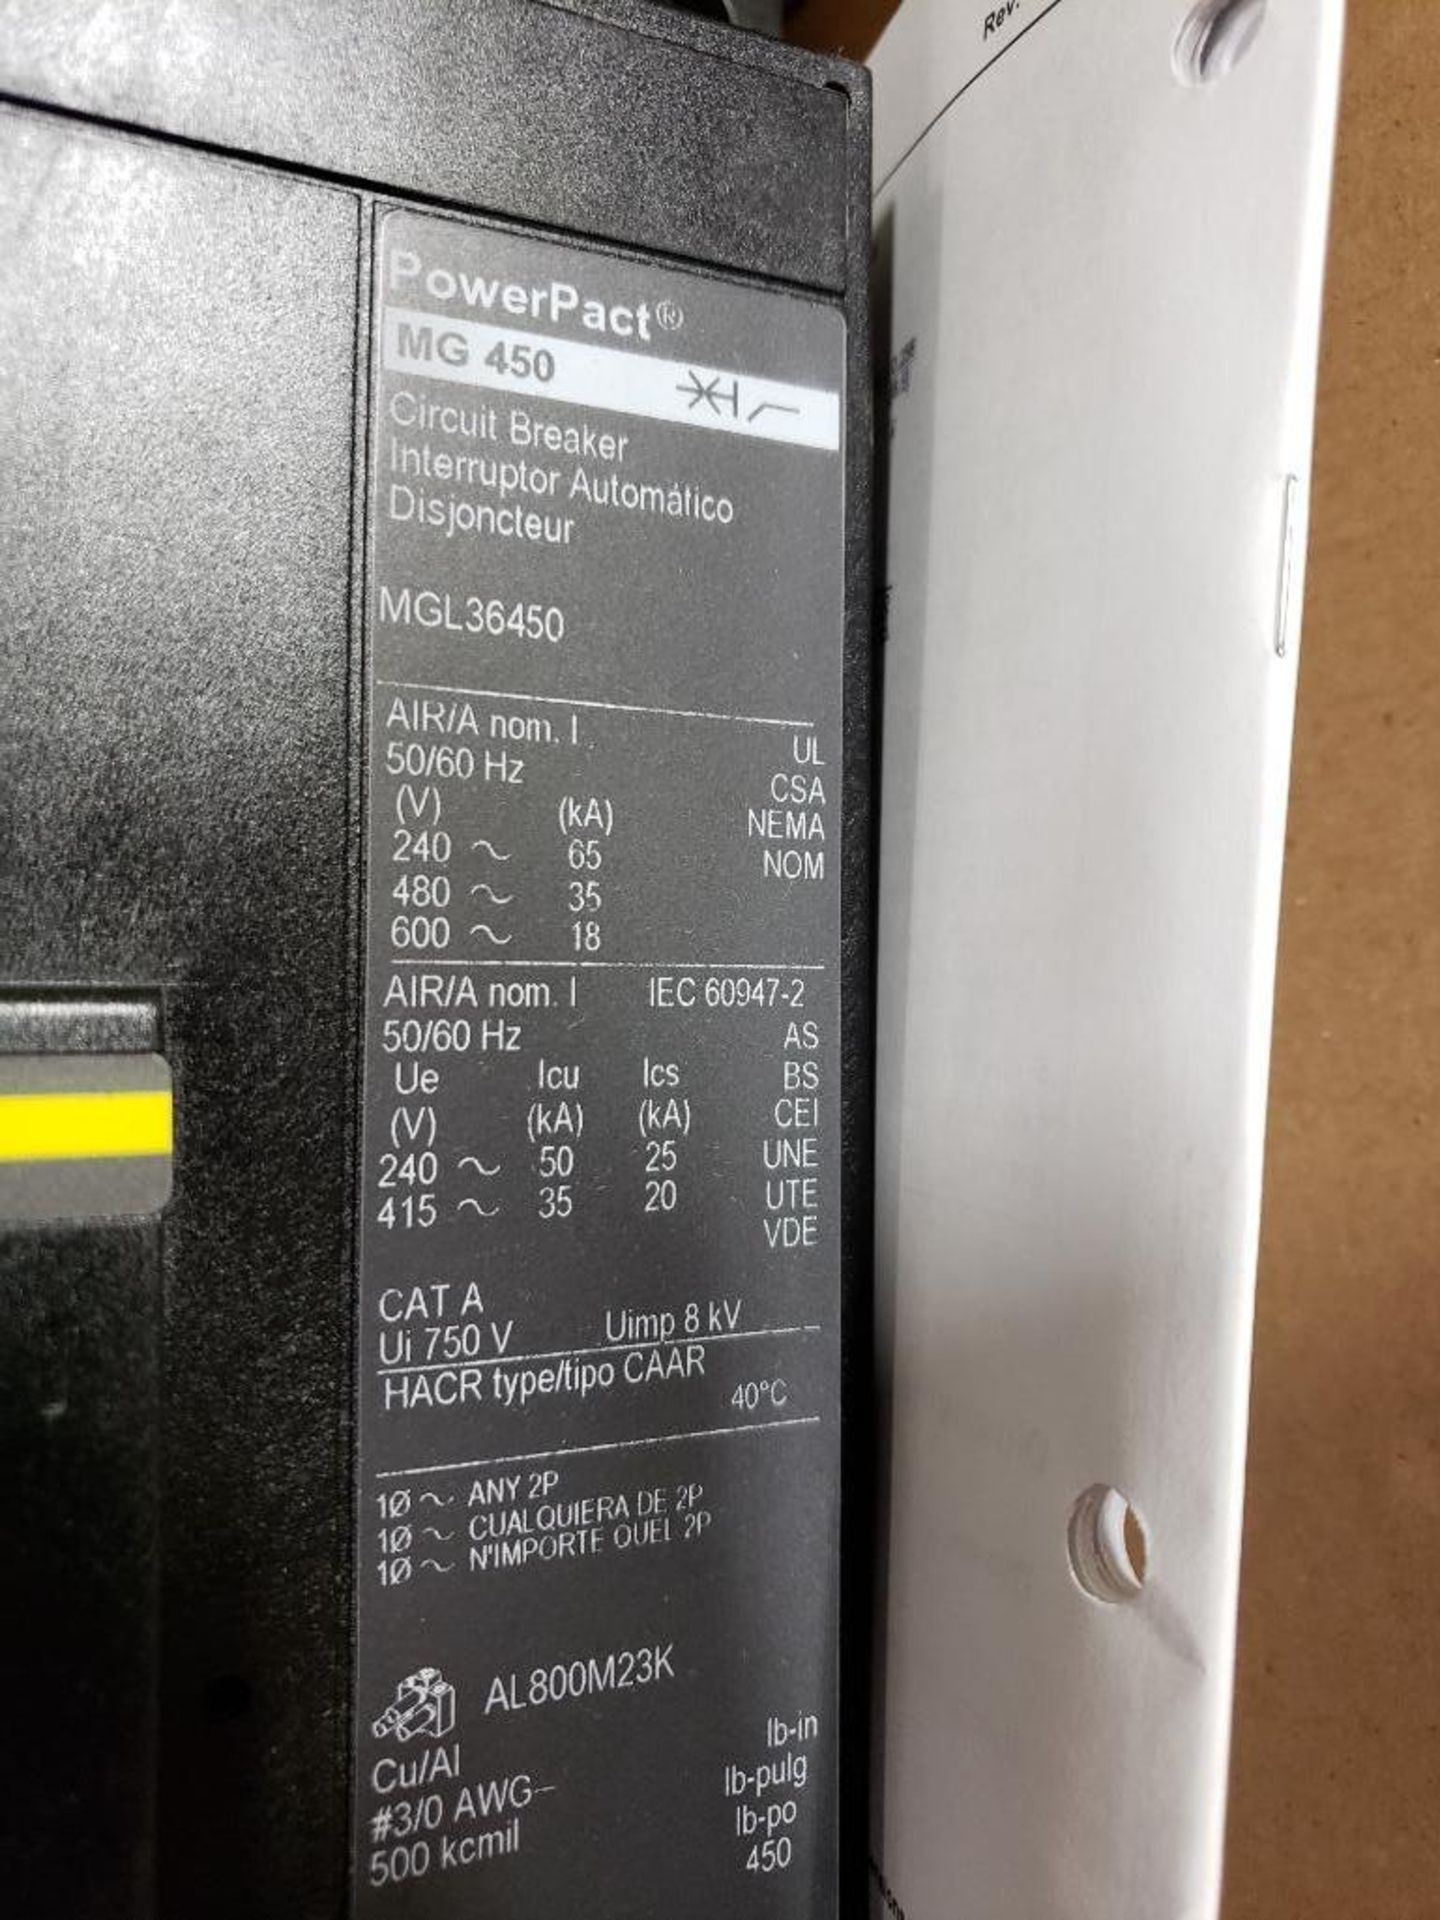 Square D PowerPact breaker. 450 amp 3 phase. Model MGL36450LW. New in box. - Image 3 of 4